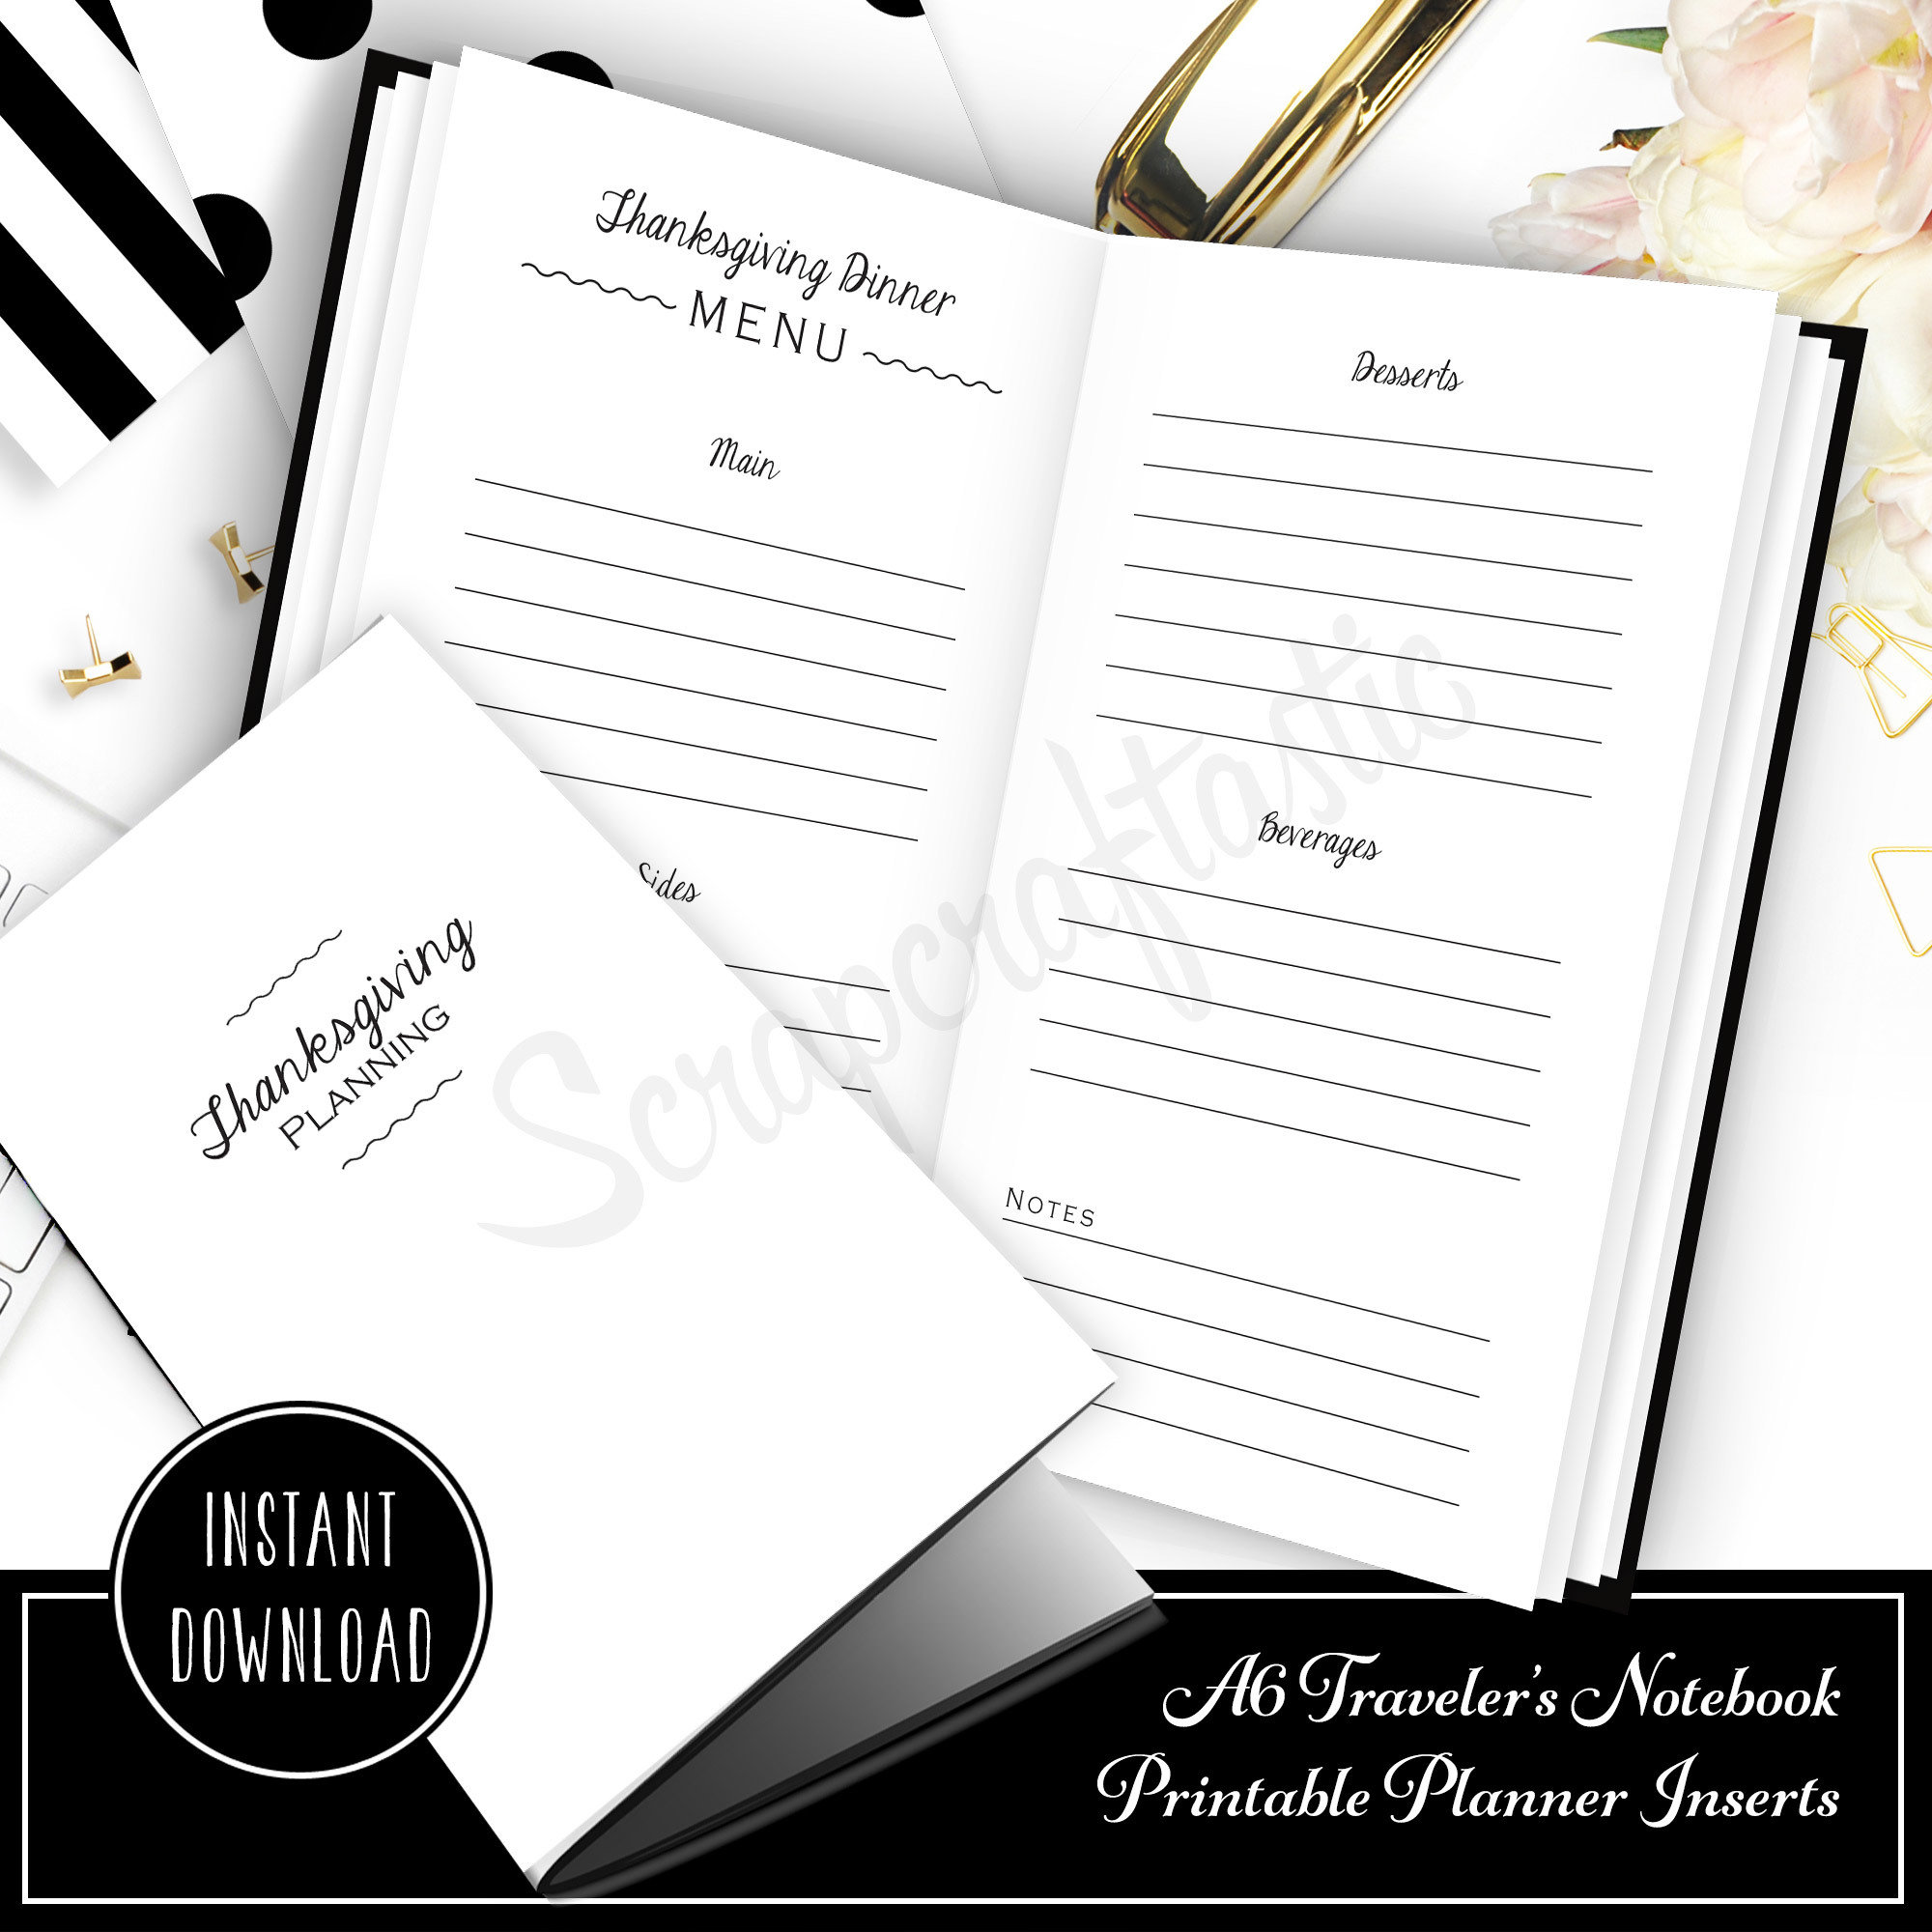 Thanksgiving Planning Printable A6 Traveler's Notebook Inserts 40007